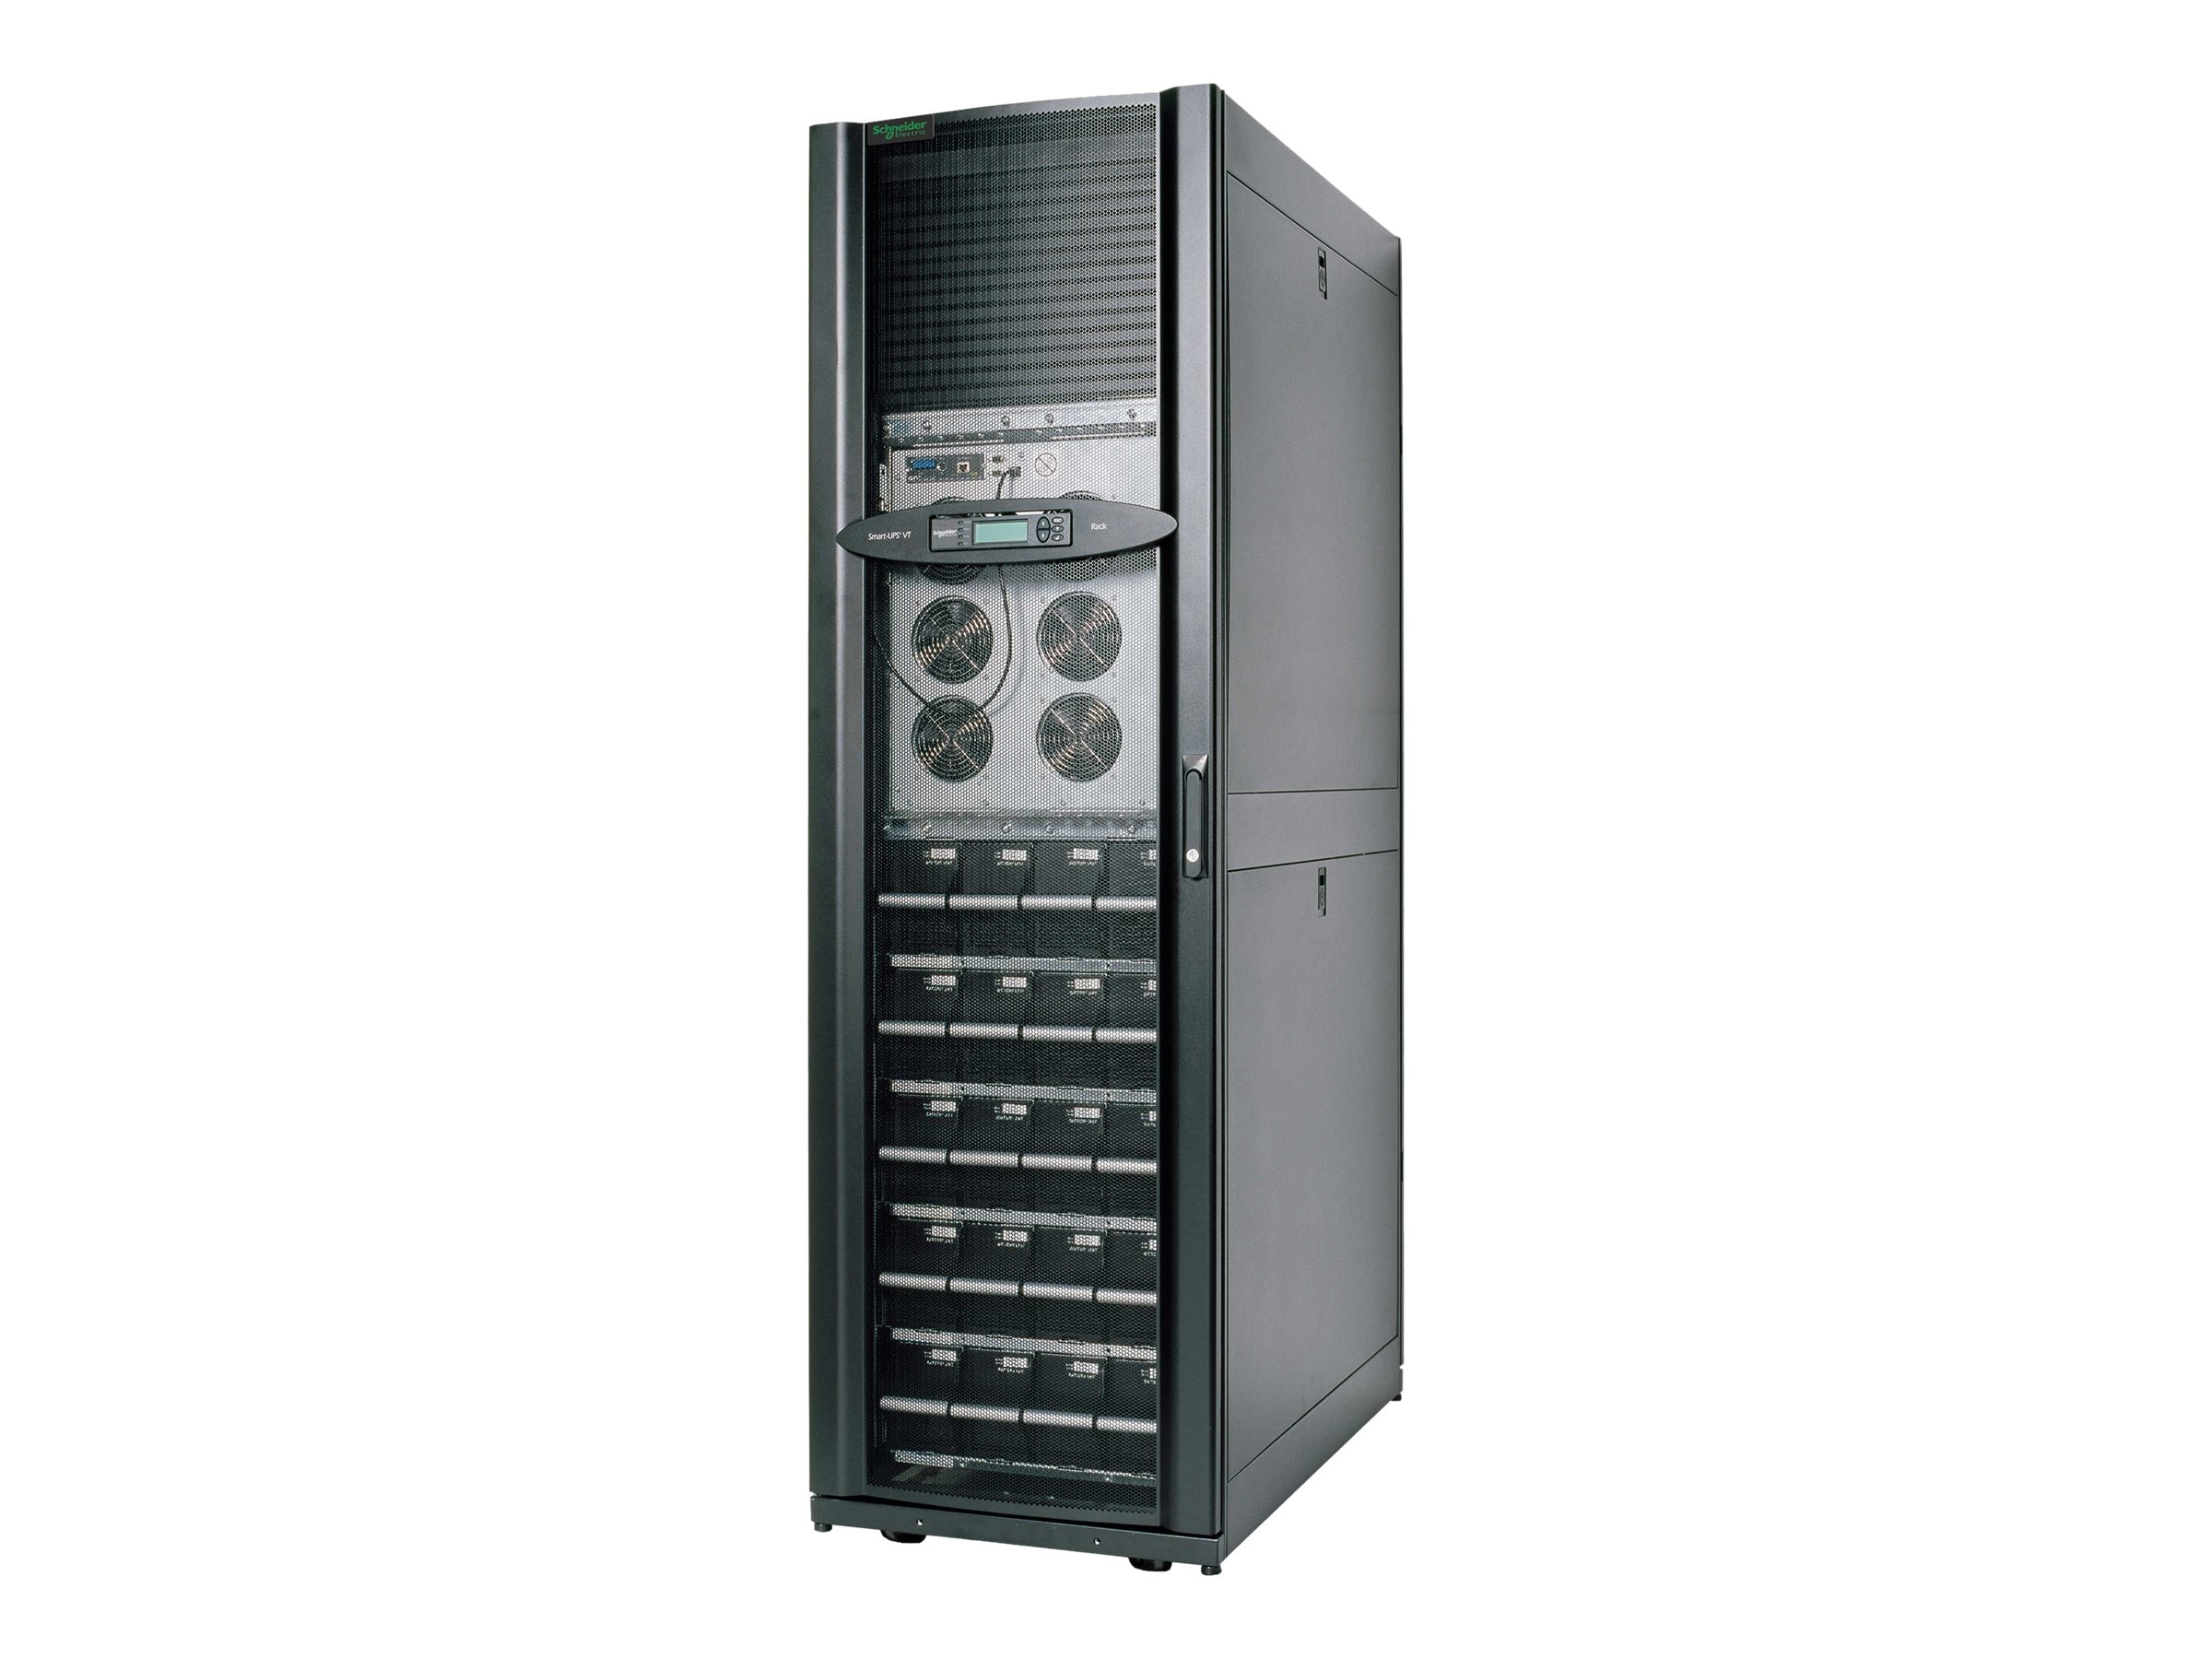 APC Smart-UPS VT 20kVA 208V Rack Mounted, (4) Battery Modules Expandable to (5), PDU, Startup Service, SUVTR20KF4B5S, 8057343, Battery Backup/UPS